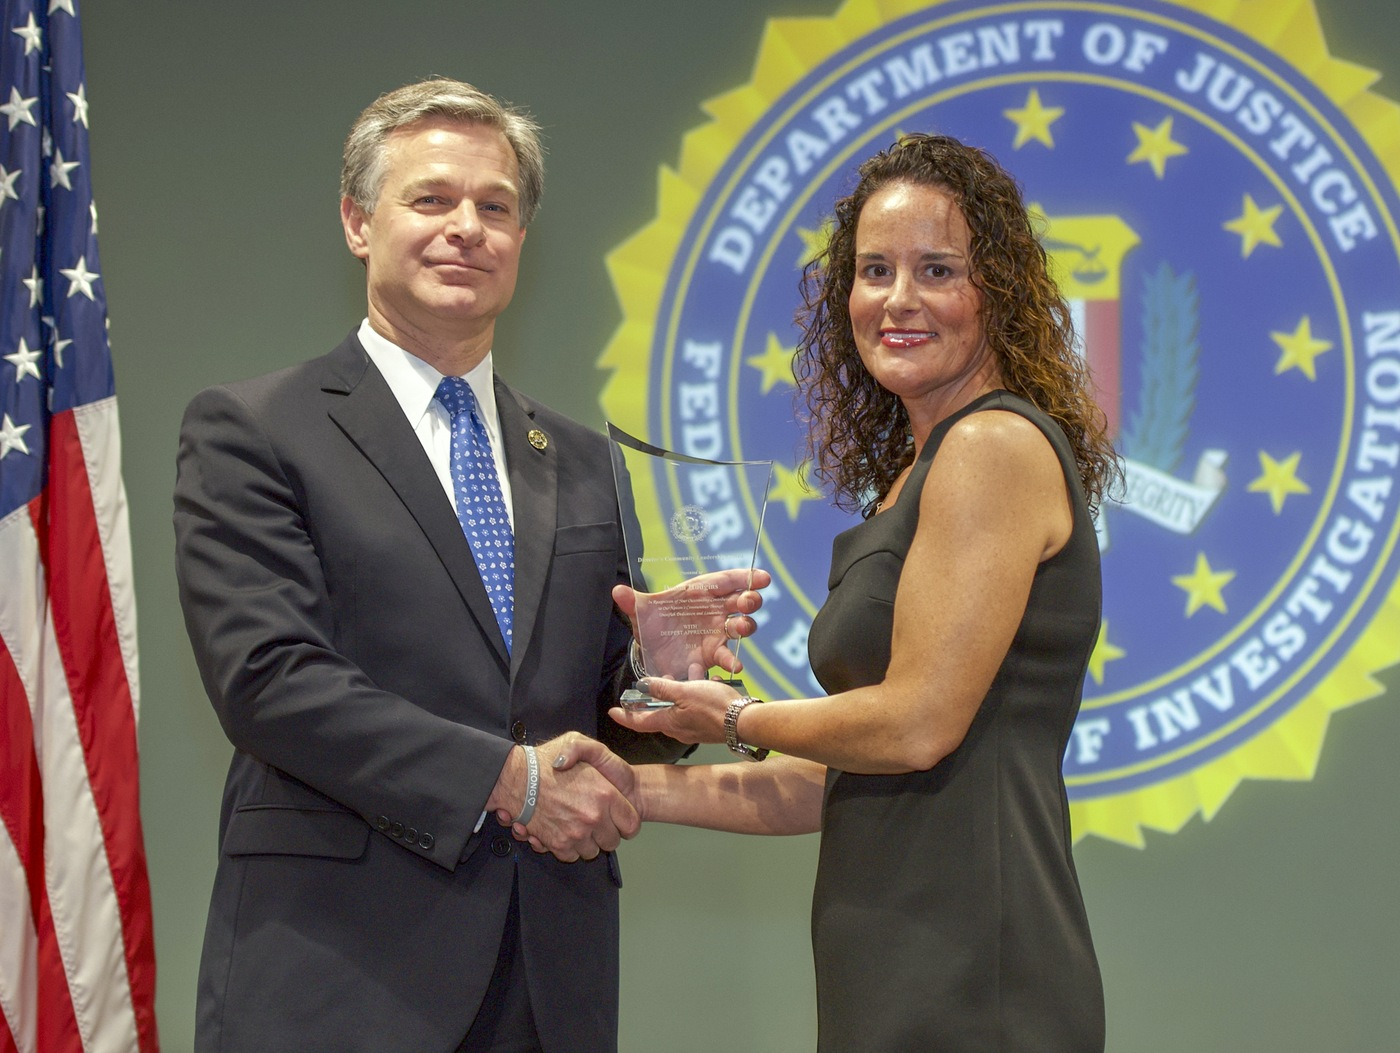 FBI Director Christopher Wray presents Cincinnati Division recipient Deana Hudgins with the Director's Community Leadership Award (DCLA) at a ceremony at FBI Headquarters on May 3, 2019.